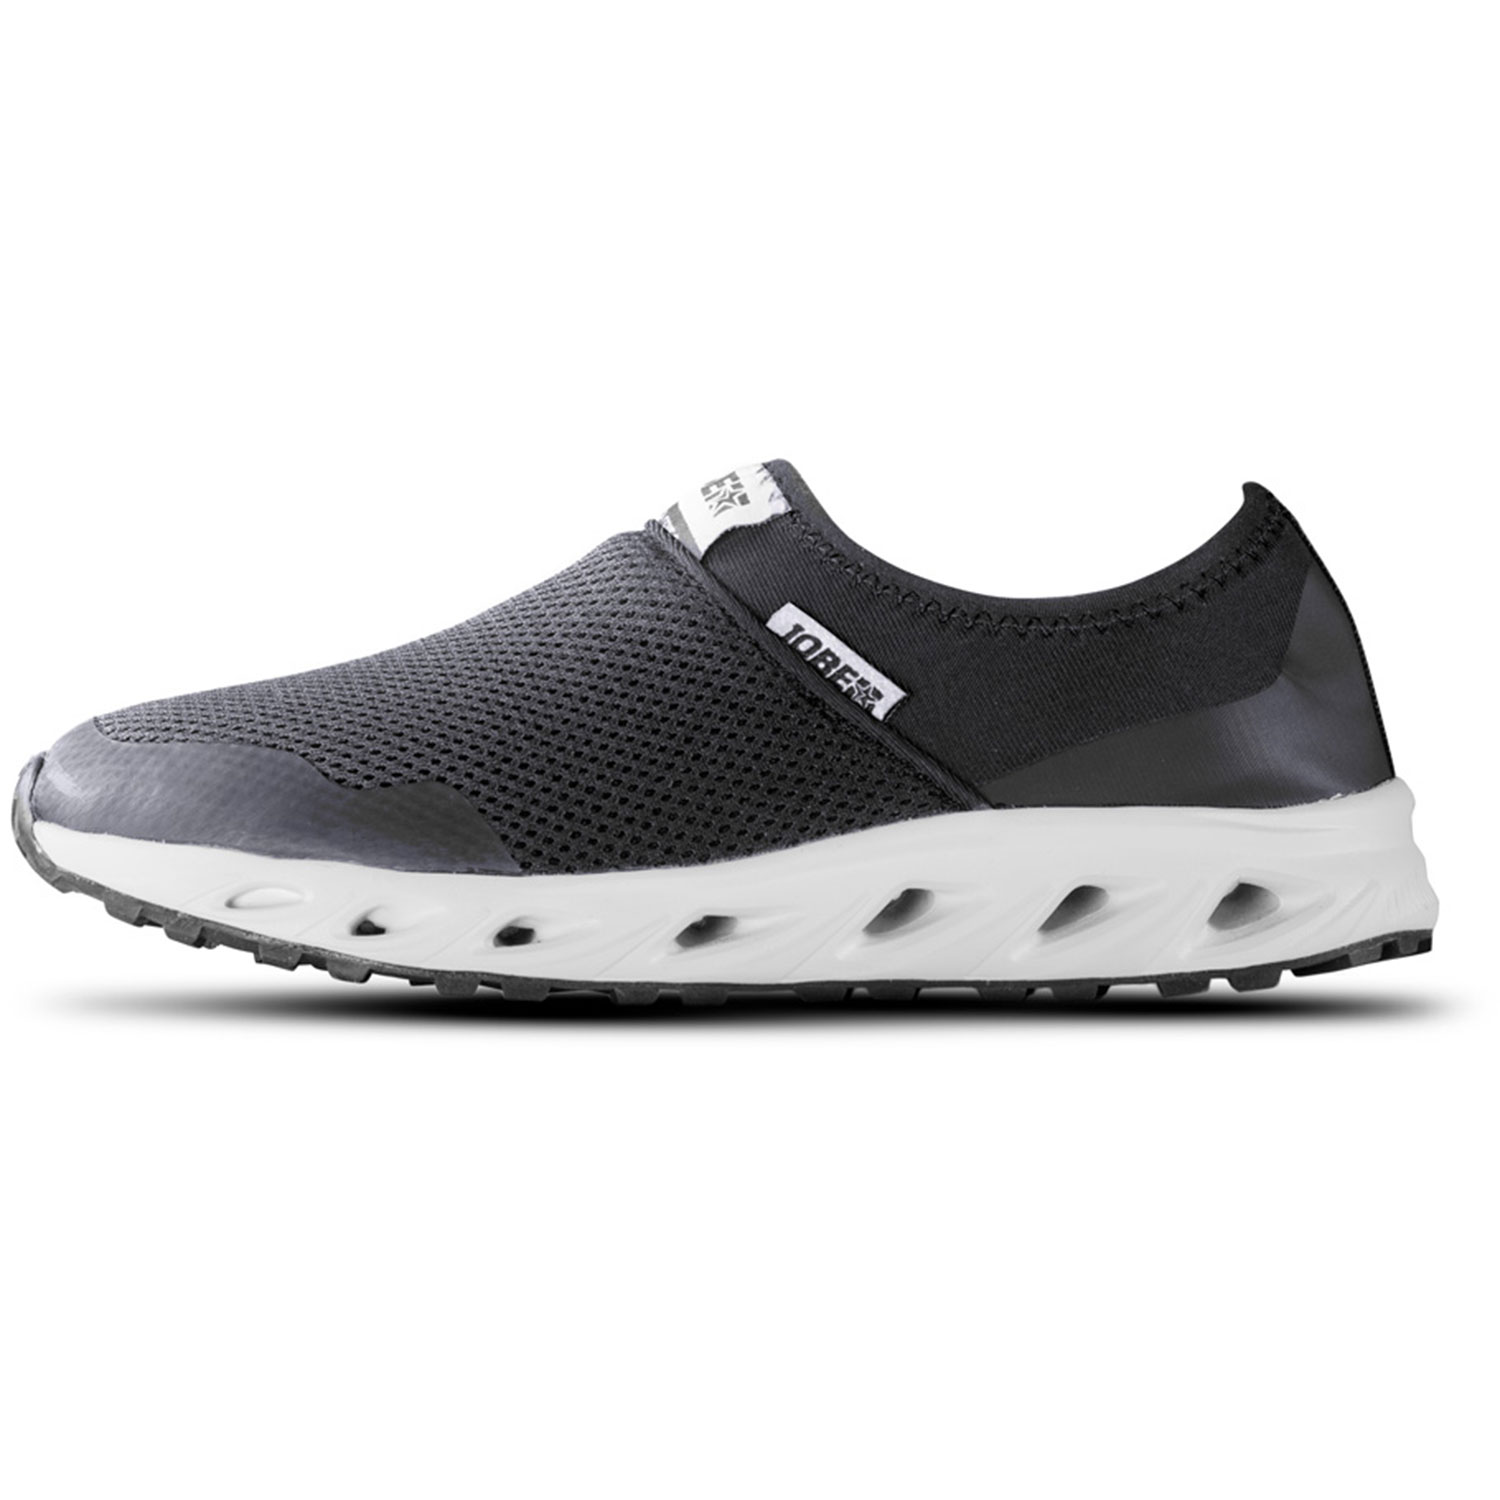 Shoes 2020 Black Jobe Discover Slip-on Water Sneakers